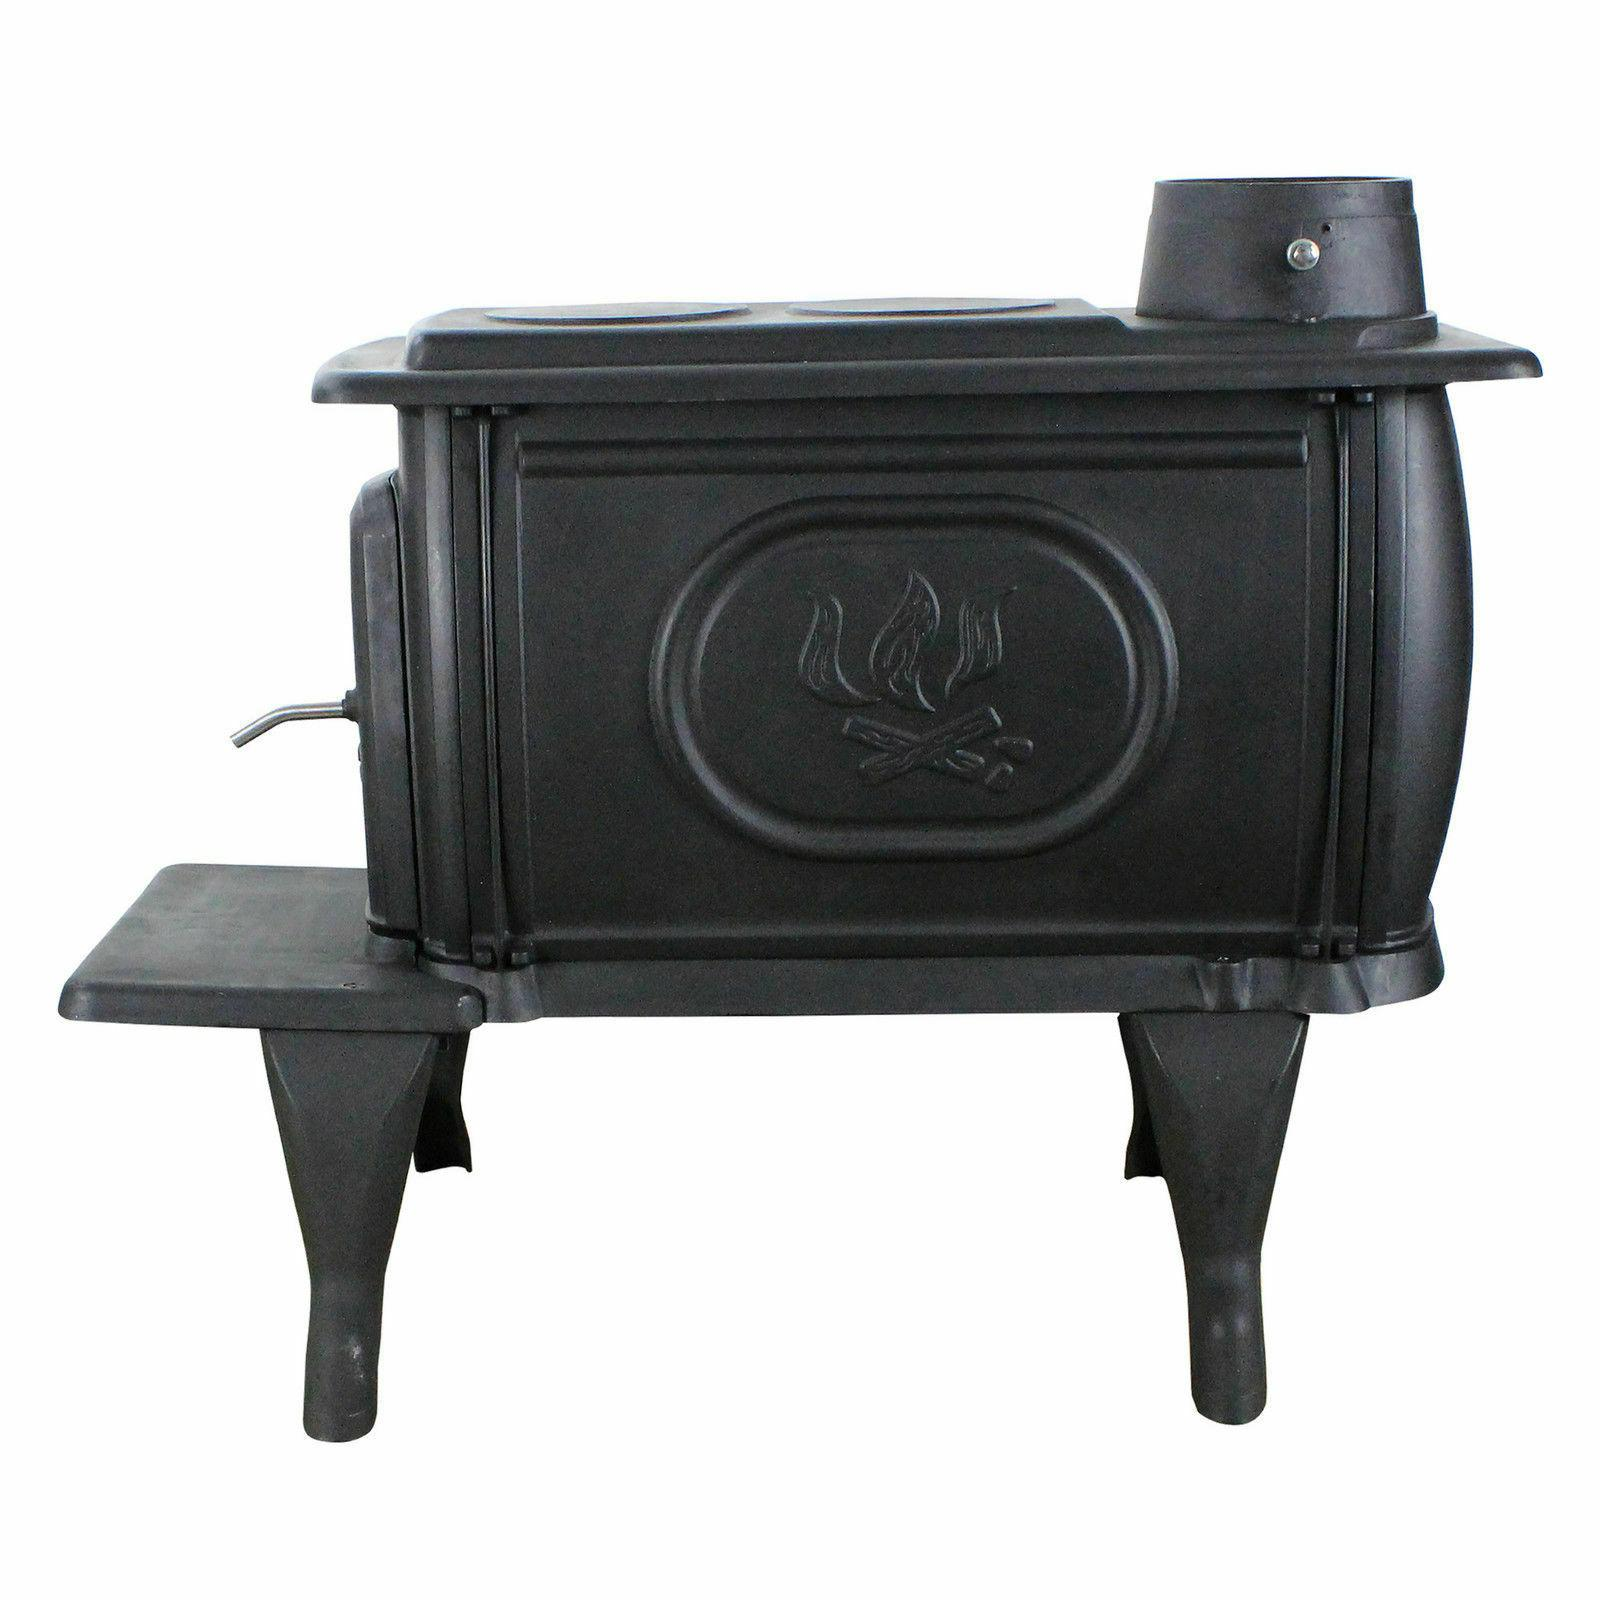 ft. Direct Vent Wood Stove States Company sq.